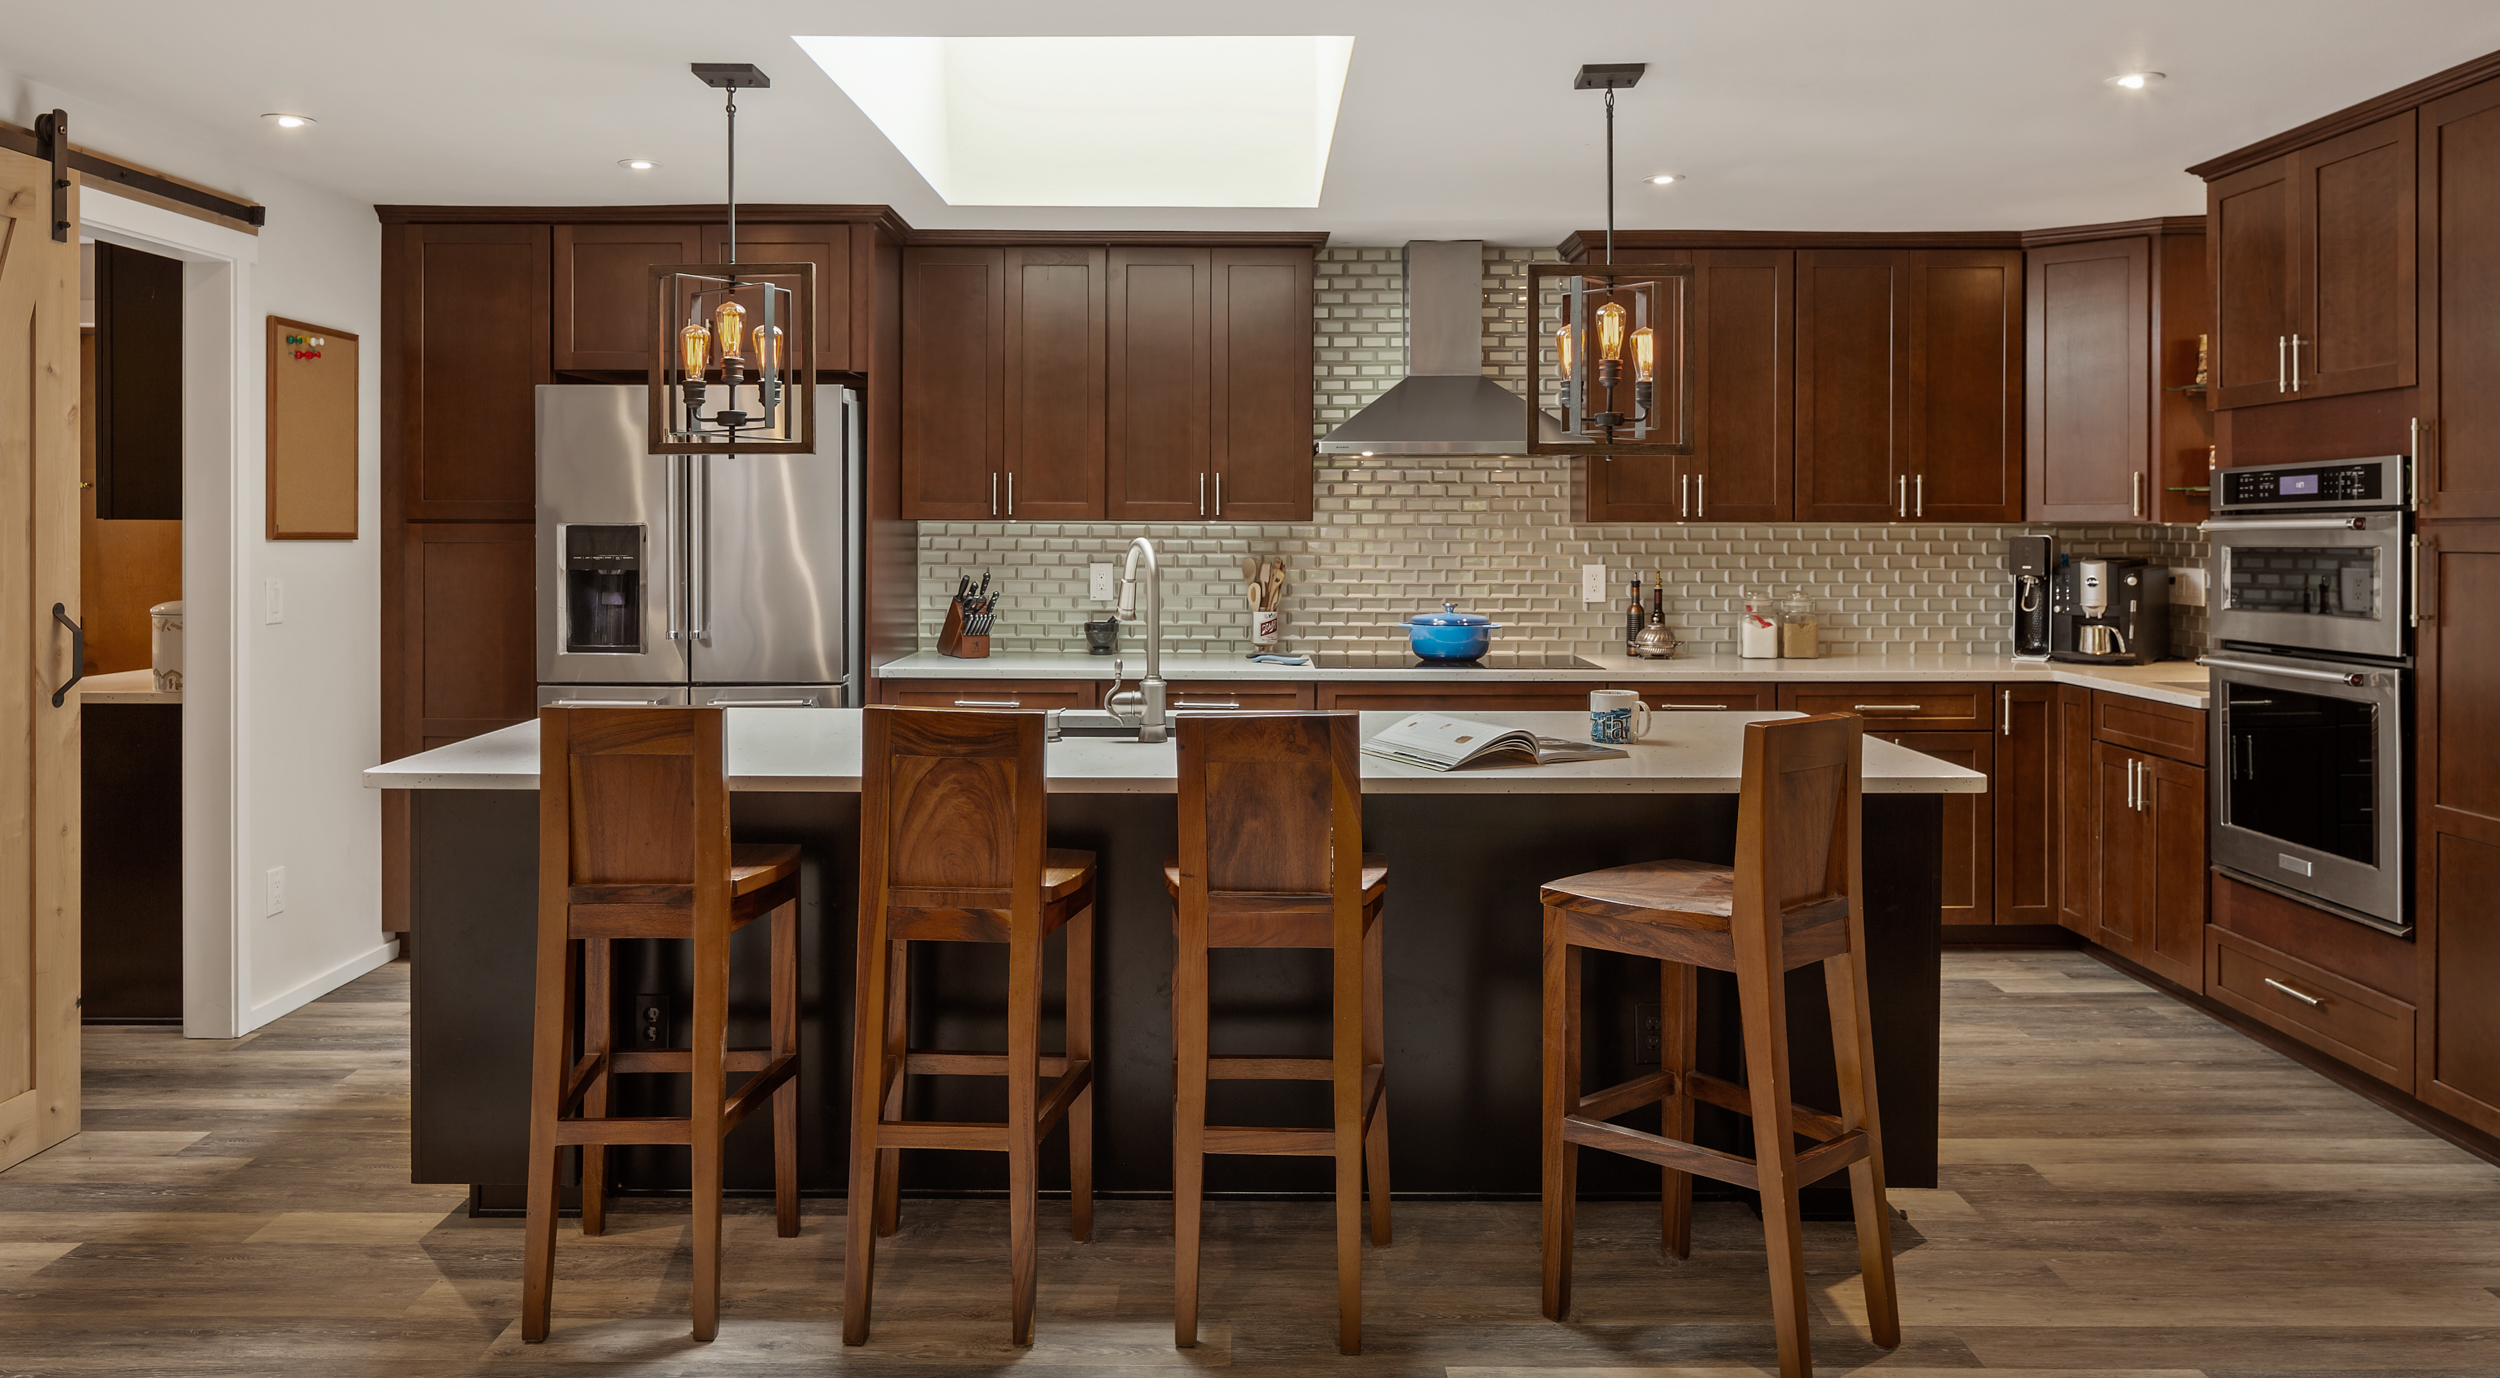 kitchen_122nd_St_Ct_nw_gig_harbor (1 of 2).JPG